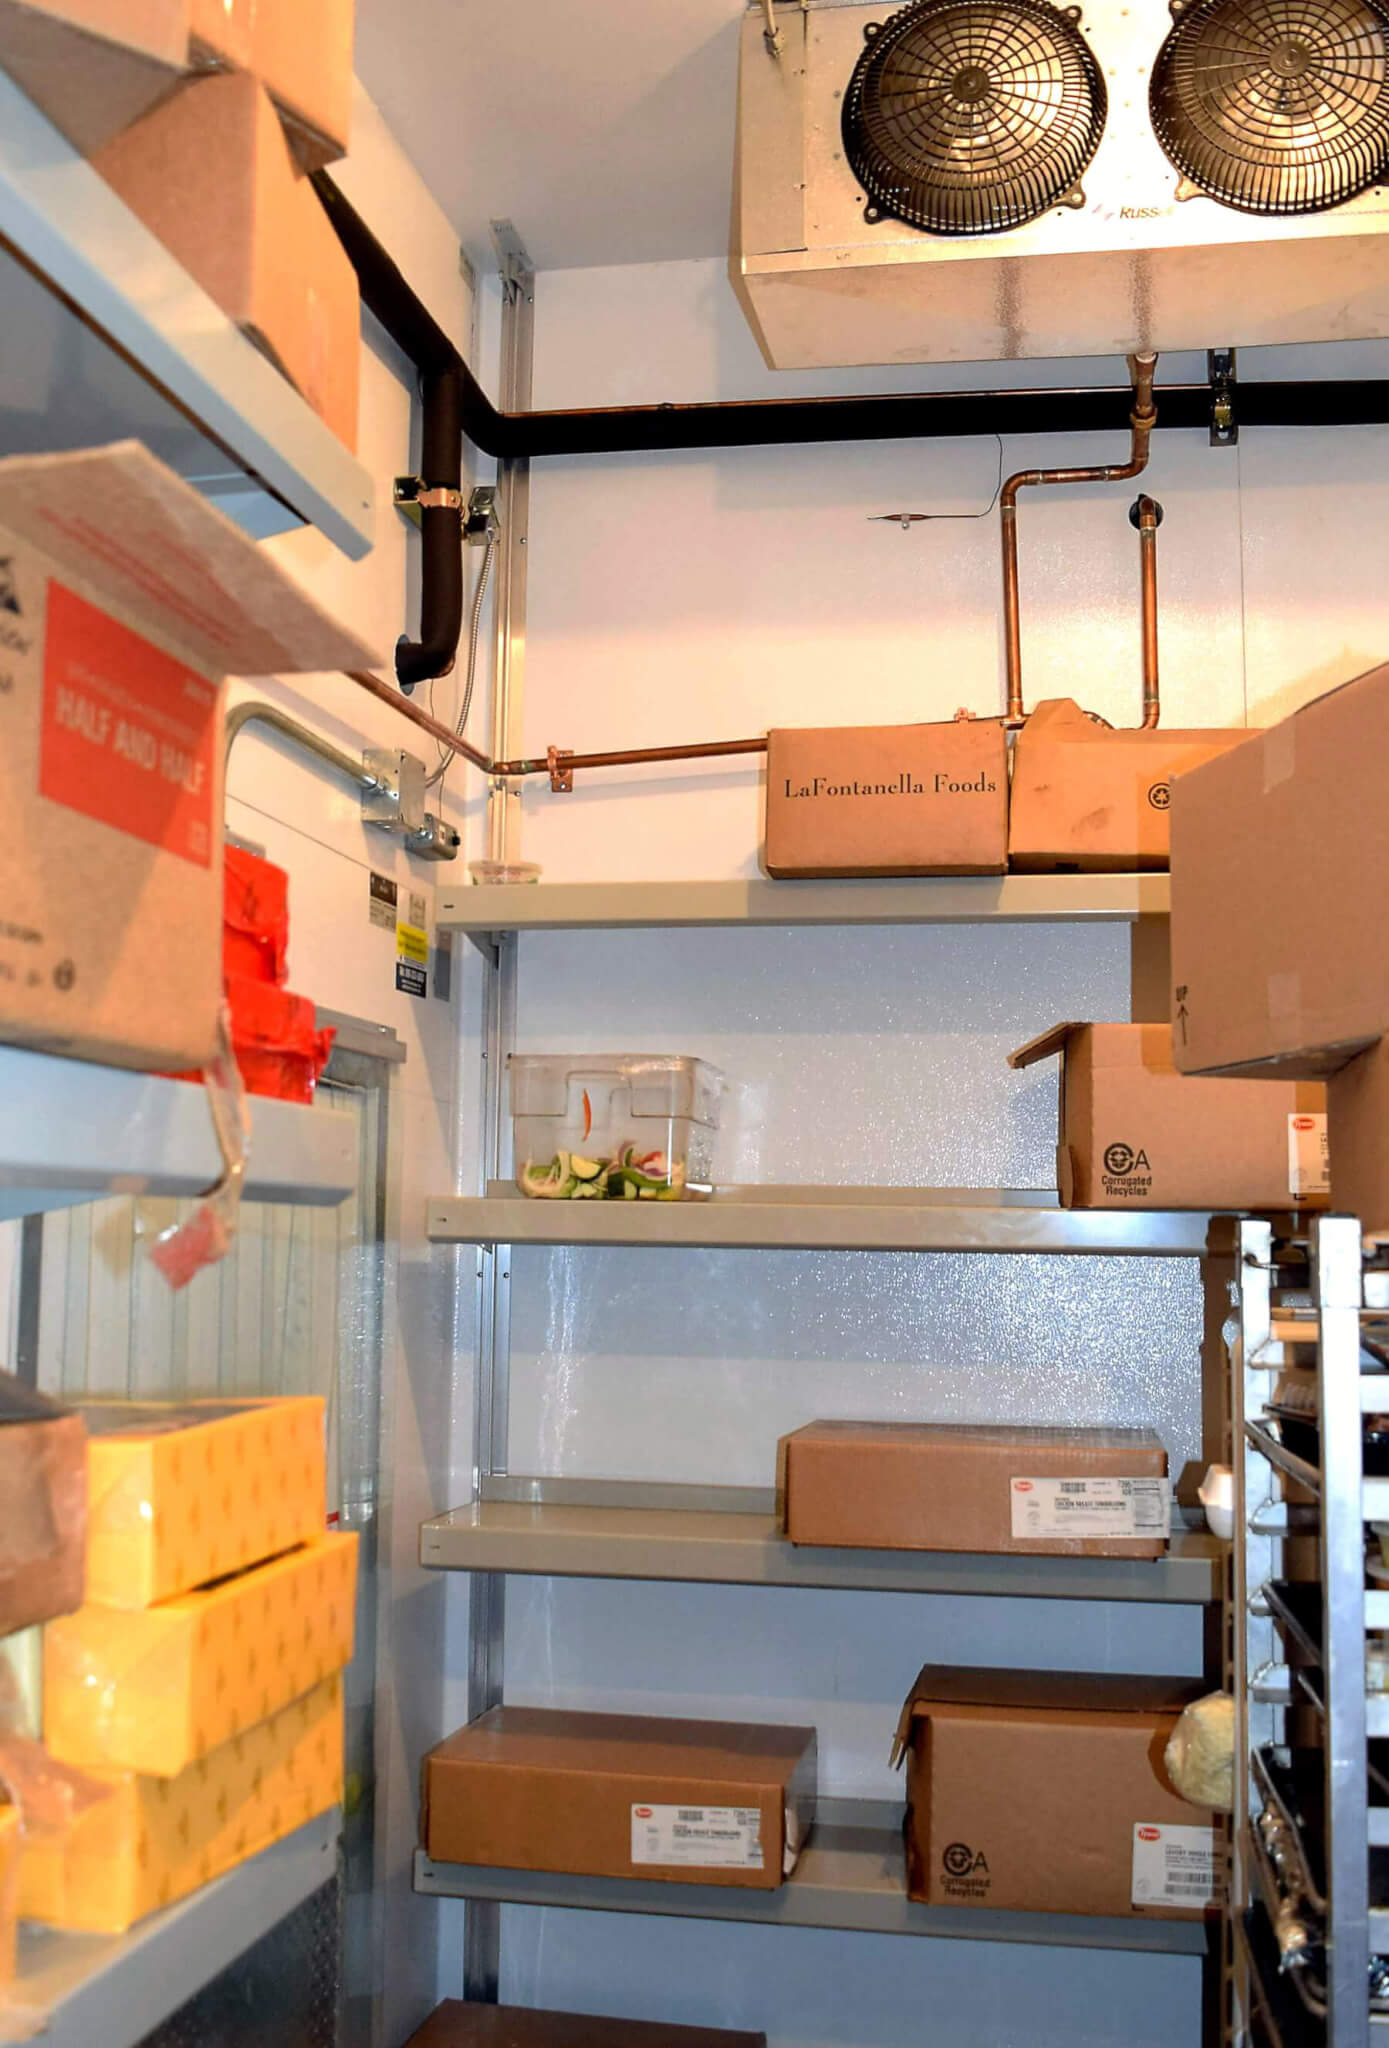 Walk In Cooler Shelving by EZ Shelving Systems Inc